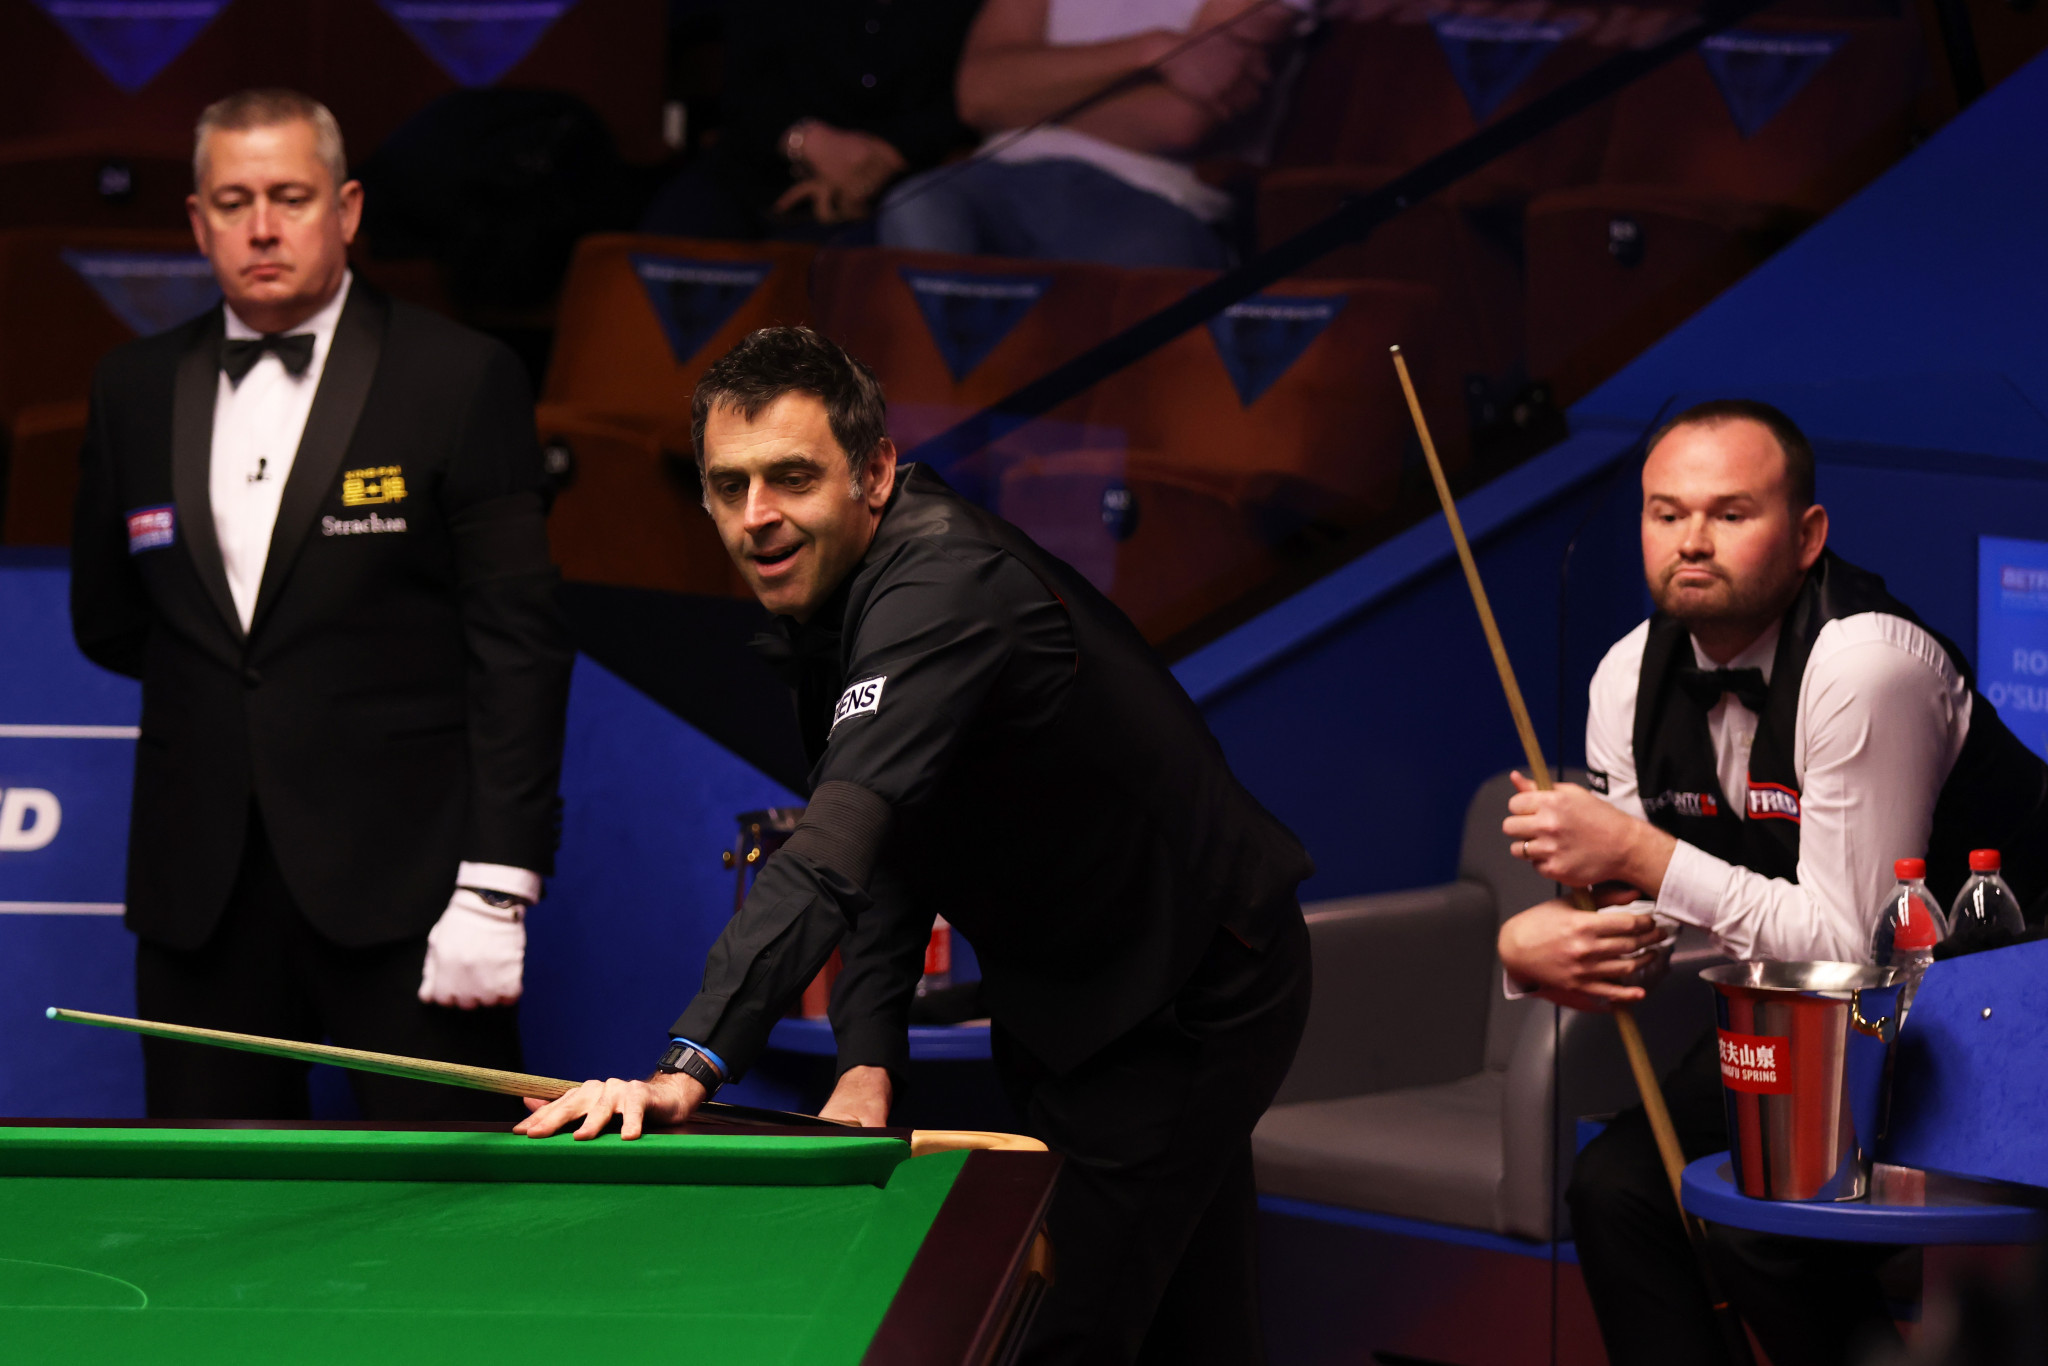 Defending champion O'Sullivan finishes strongly as he advances to second round of World Snooker Championship